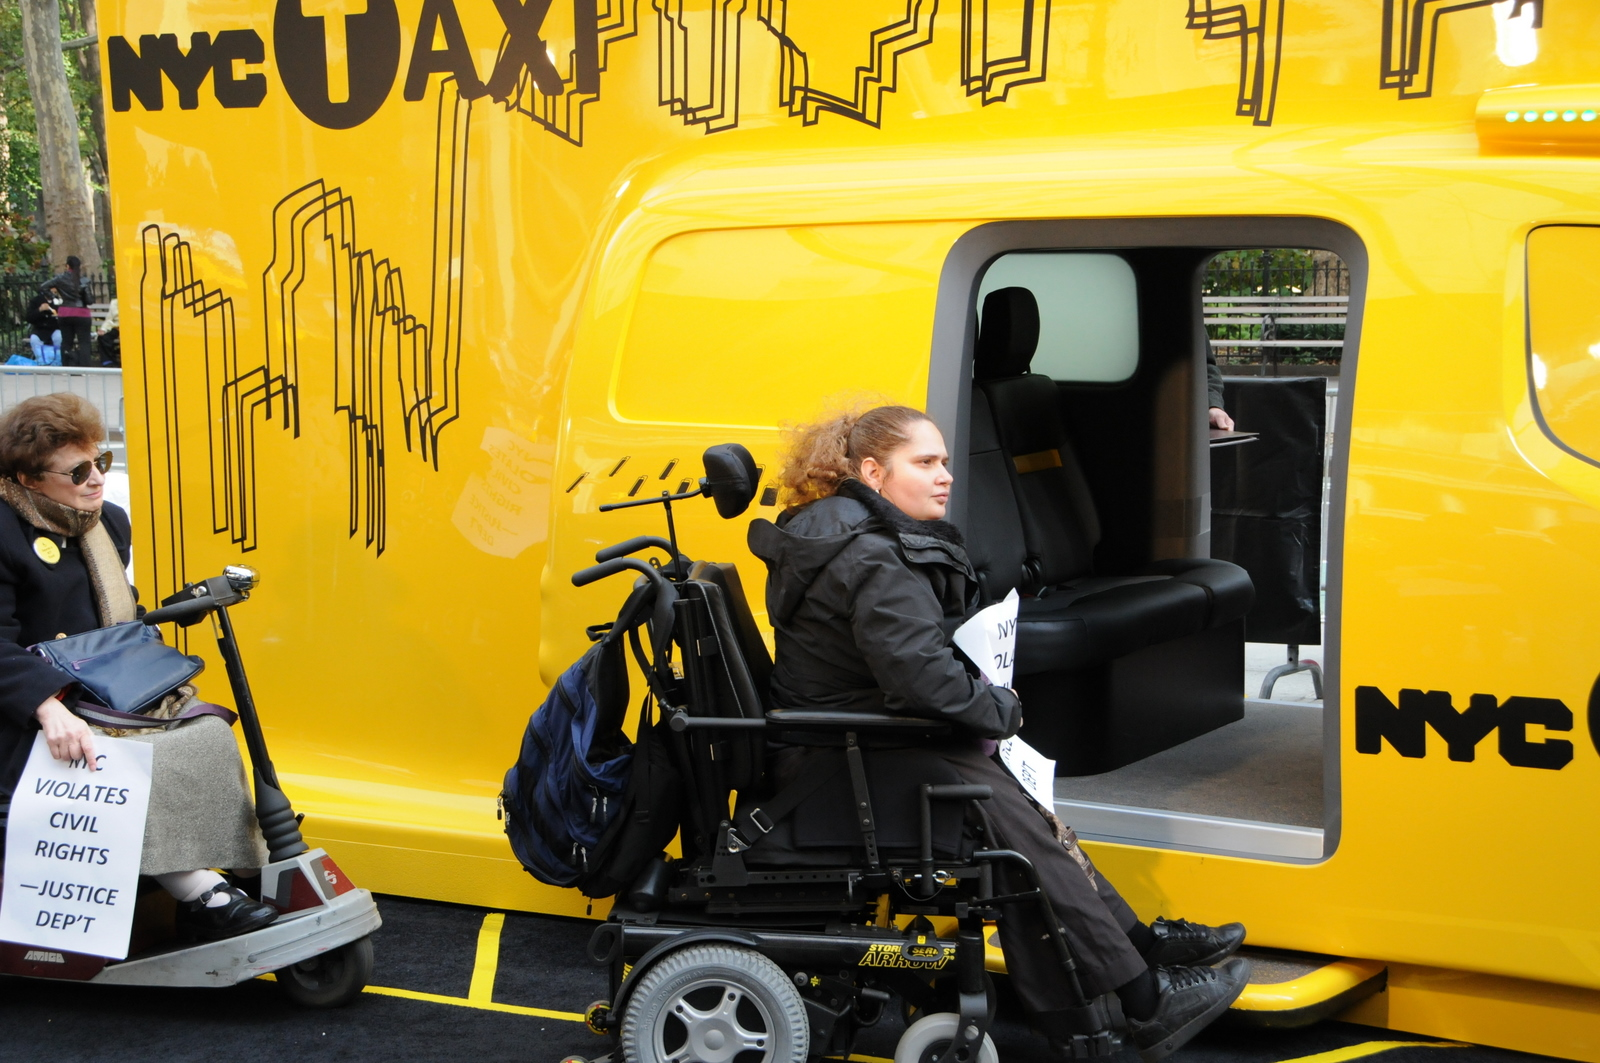 larger photo of a woman in a wheelchair at an inaccessible entrance to the taxicab